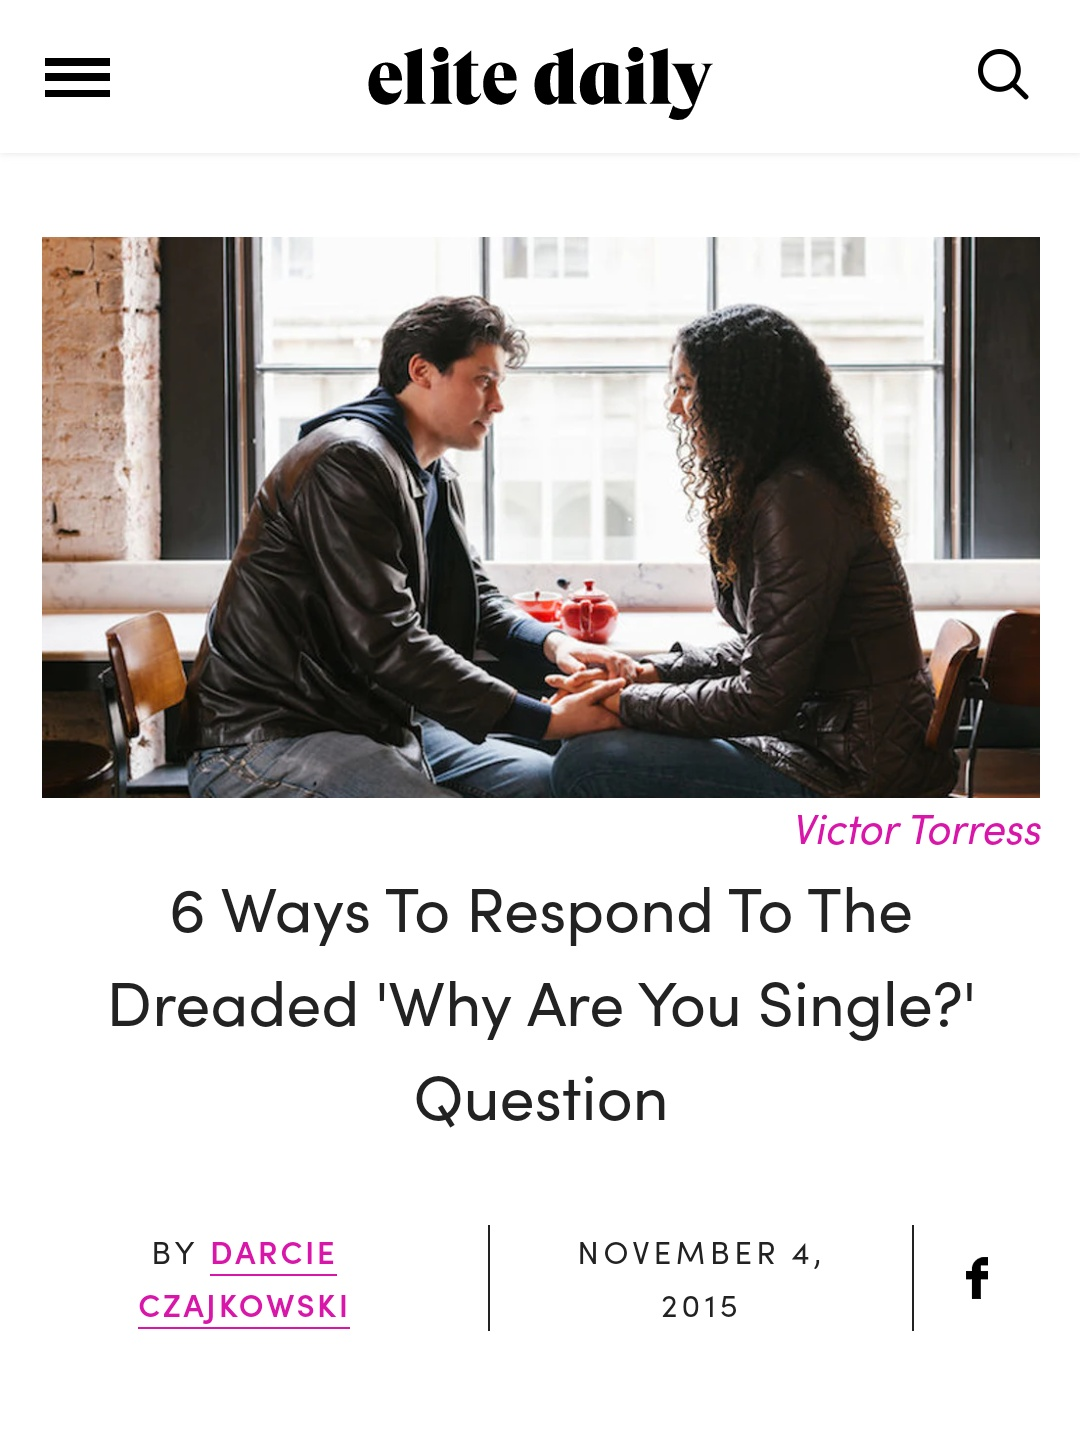 6-Ways-Respond-Why-Are-You-Single-Question_Darcie-Brown-LMFT-on-Elite-Daily